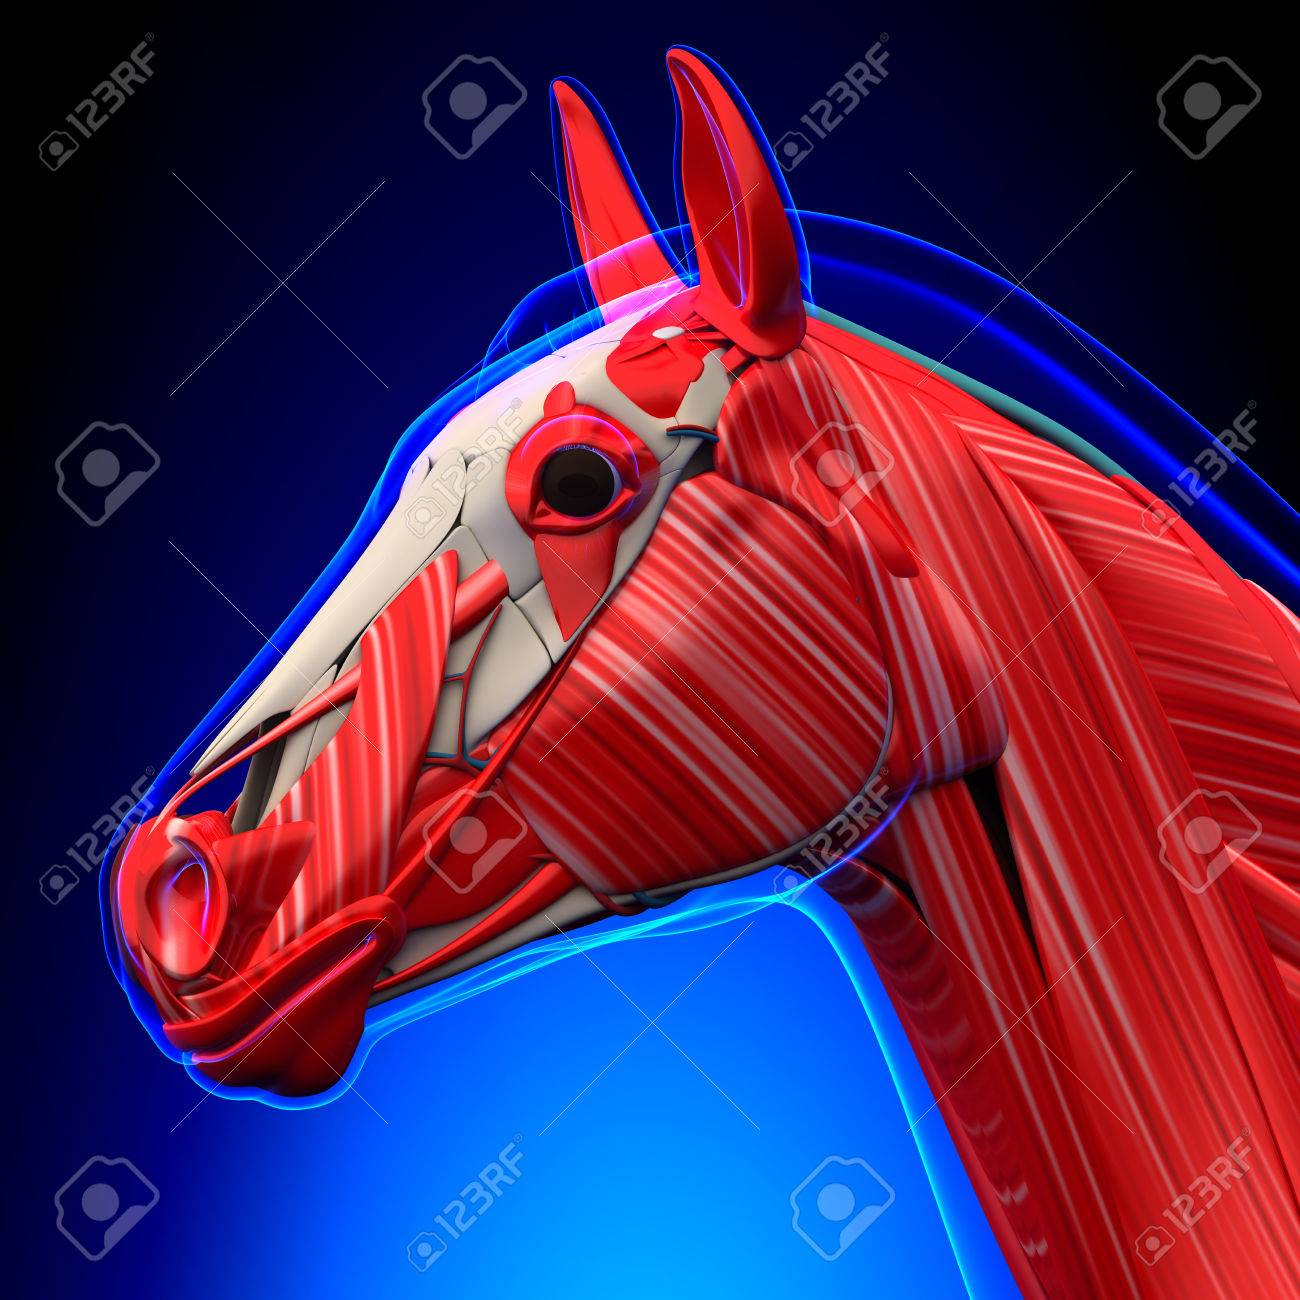 Horse Head Muscles - Horse Equus Anatomy - On Blue Background Stock ...